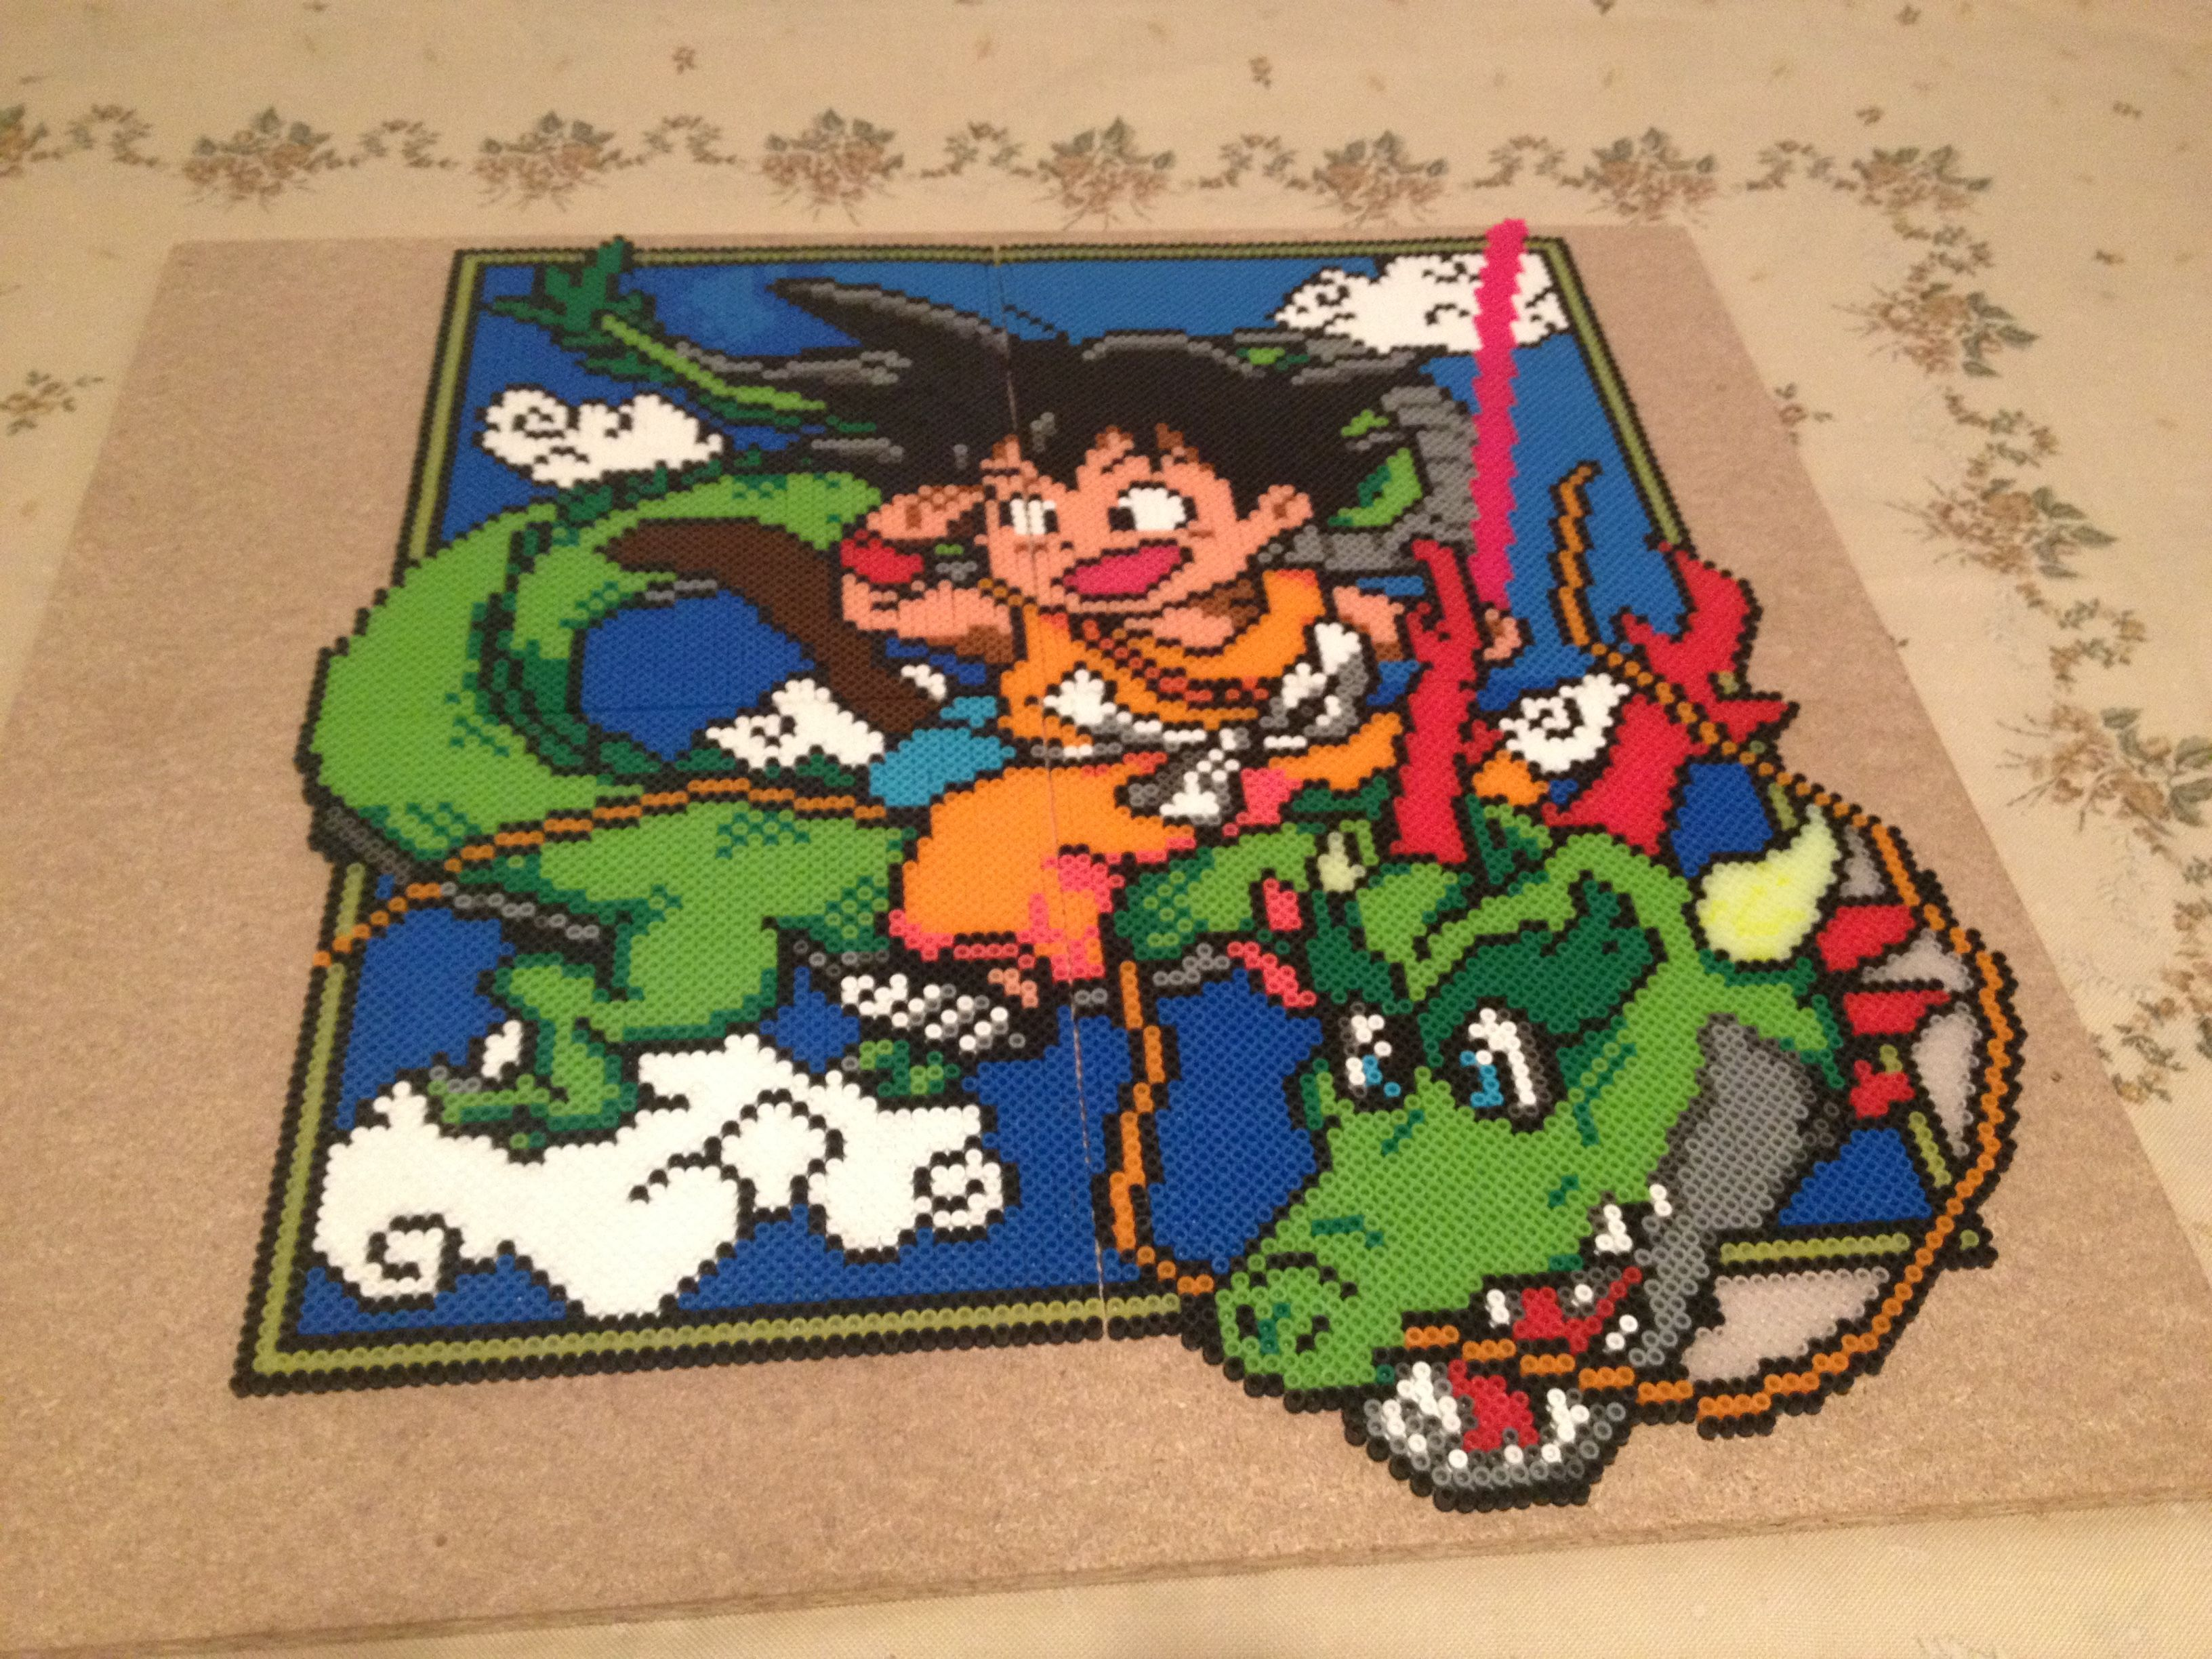 cuadro echo con hama beads - Visit now for 3D Dragon Ball Z shirts now on sale!